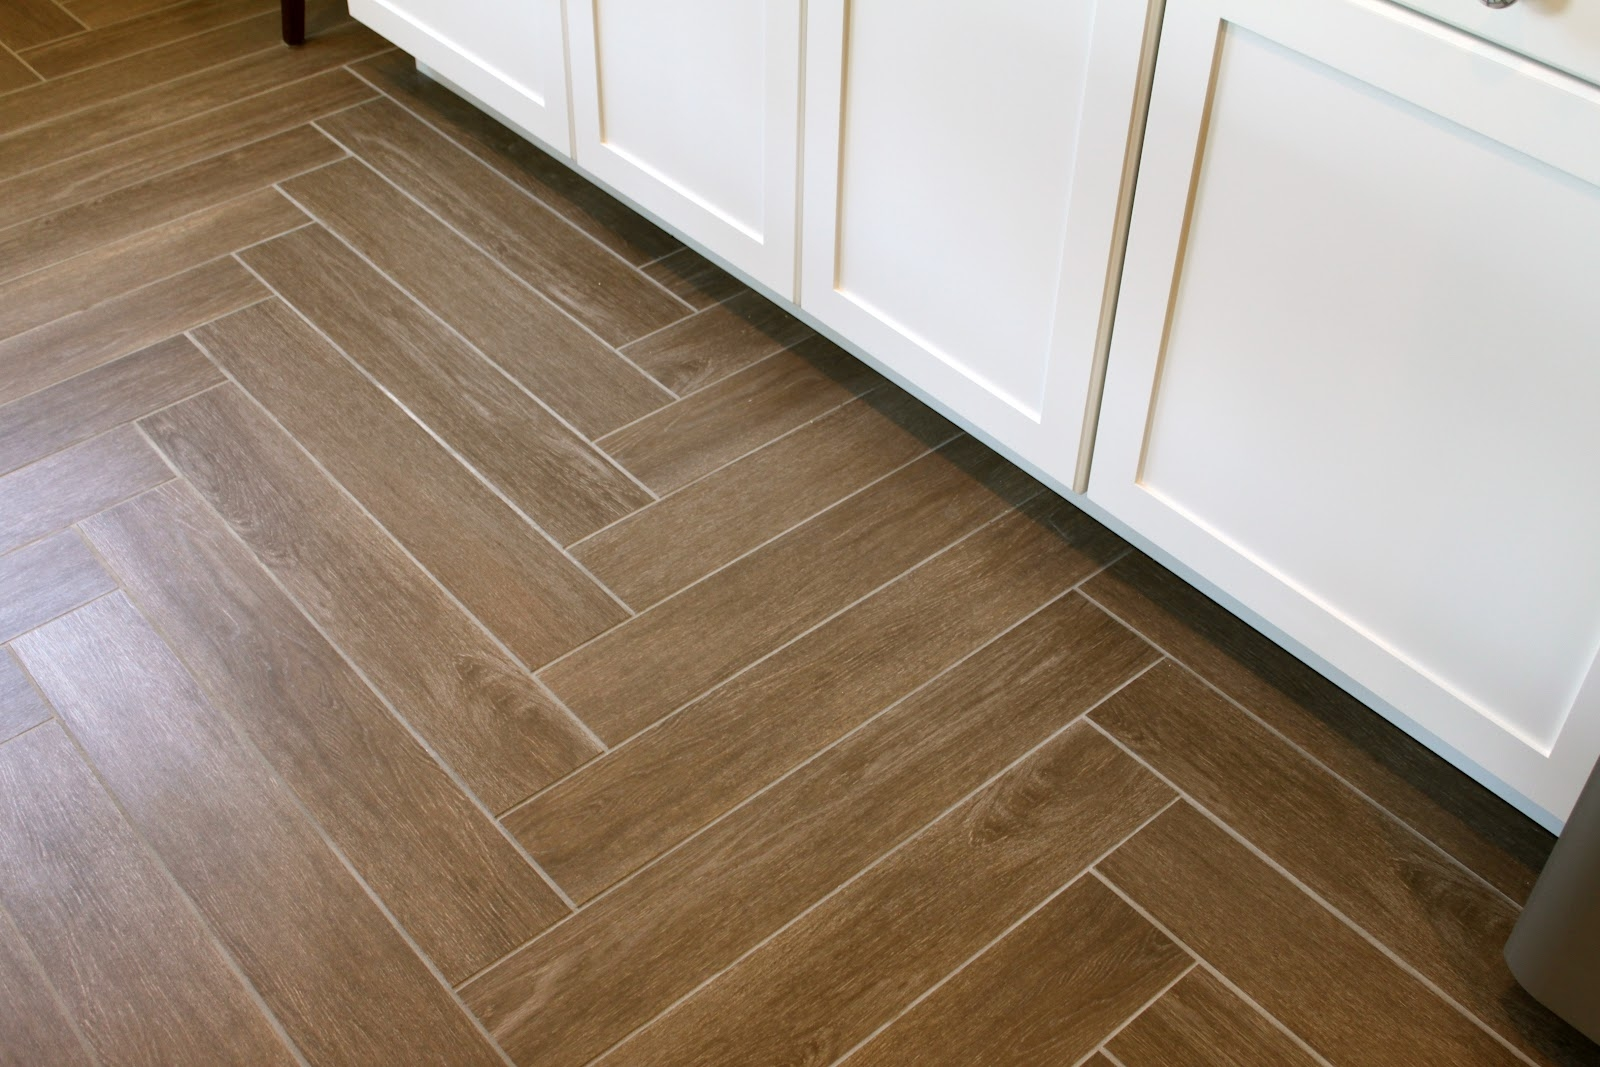 Permalink to Herringbone Pattern Wood Tile Floor